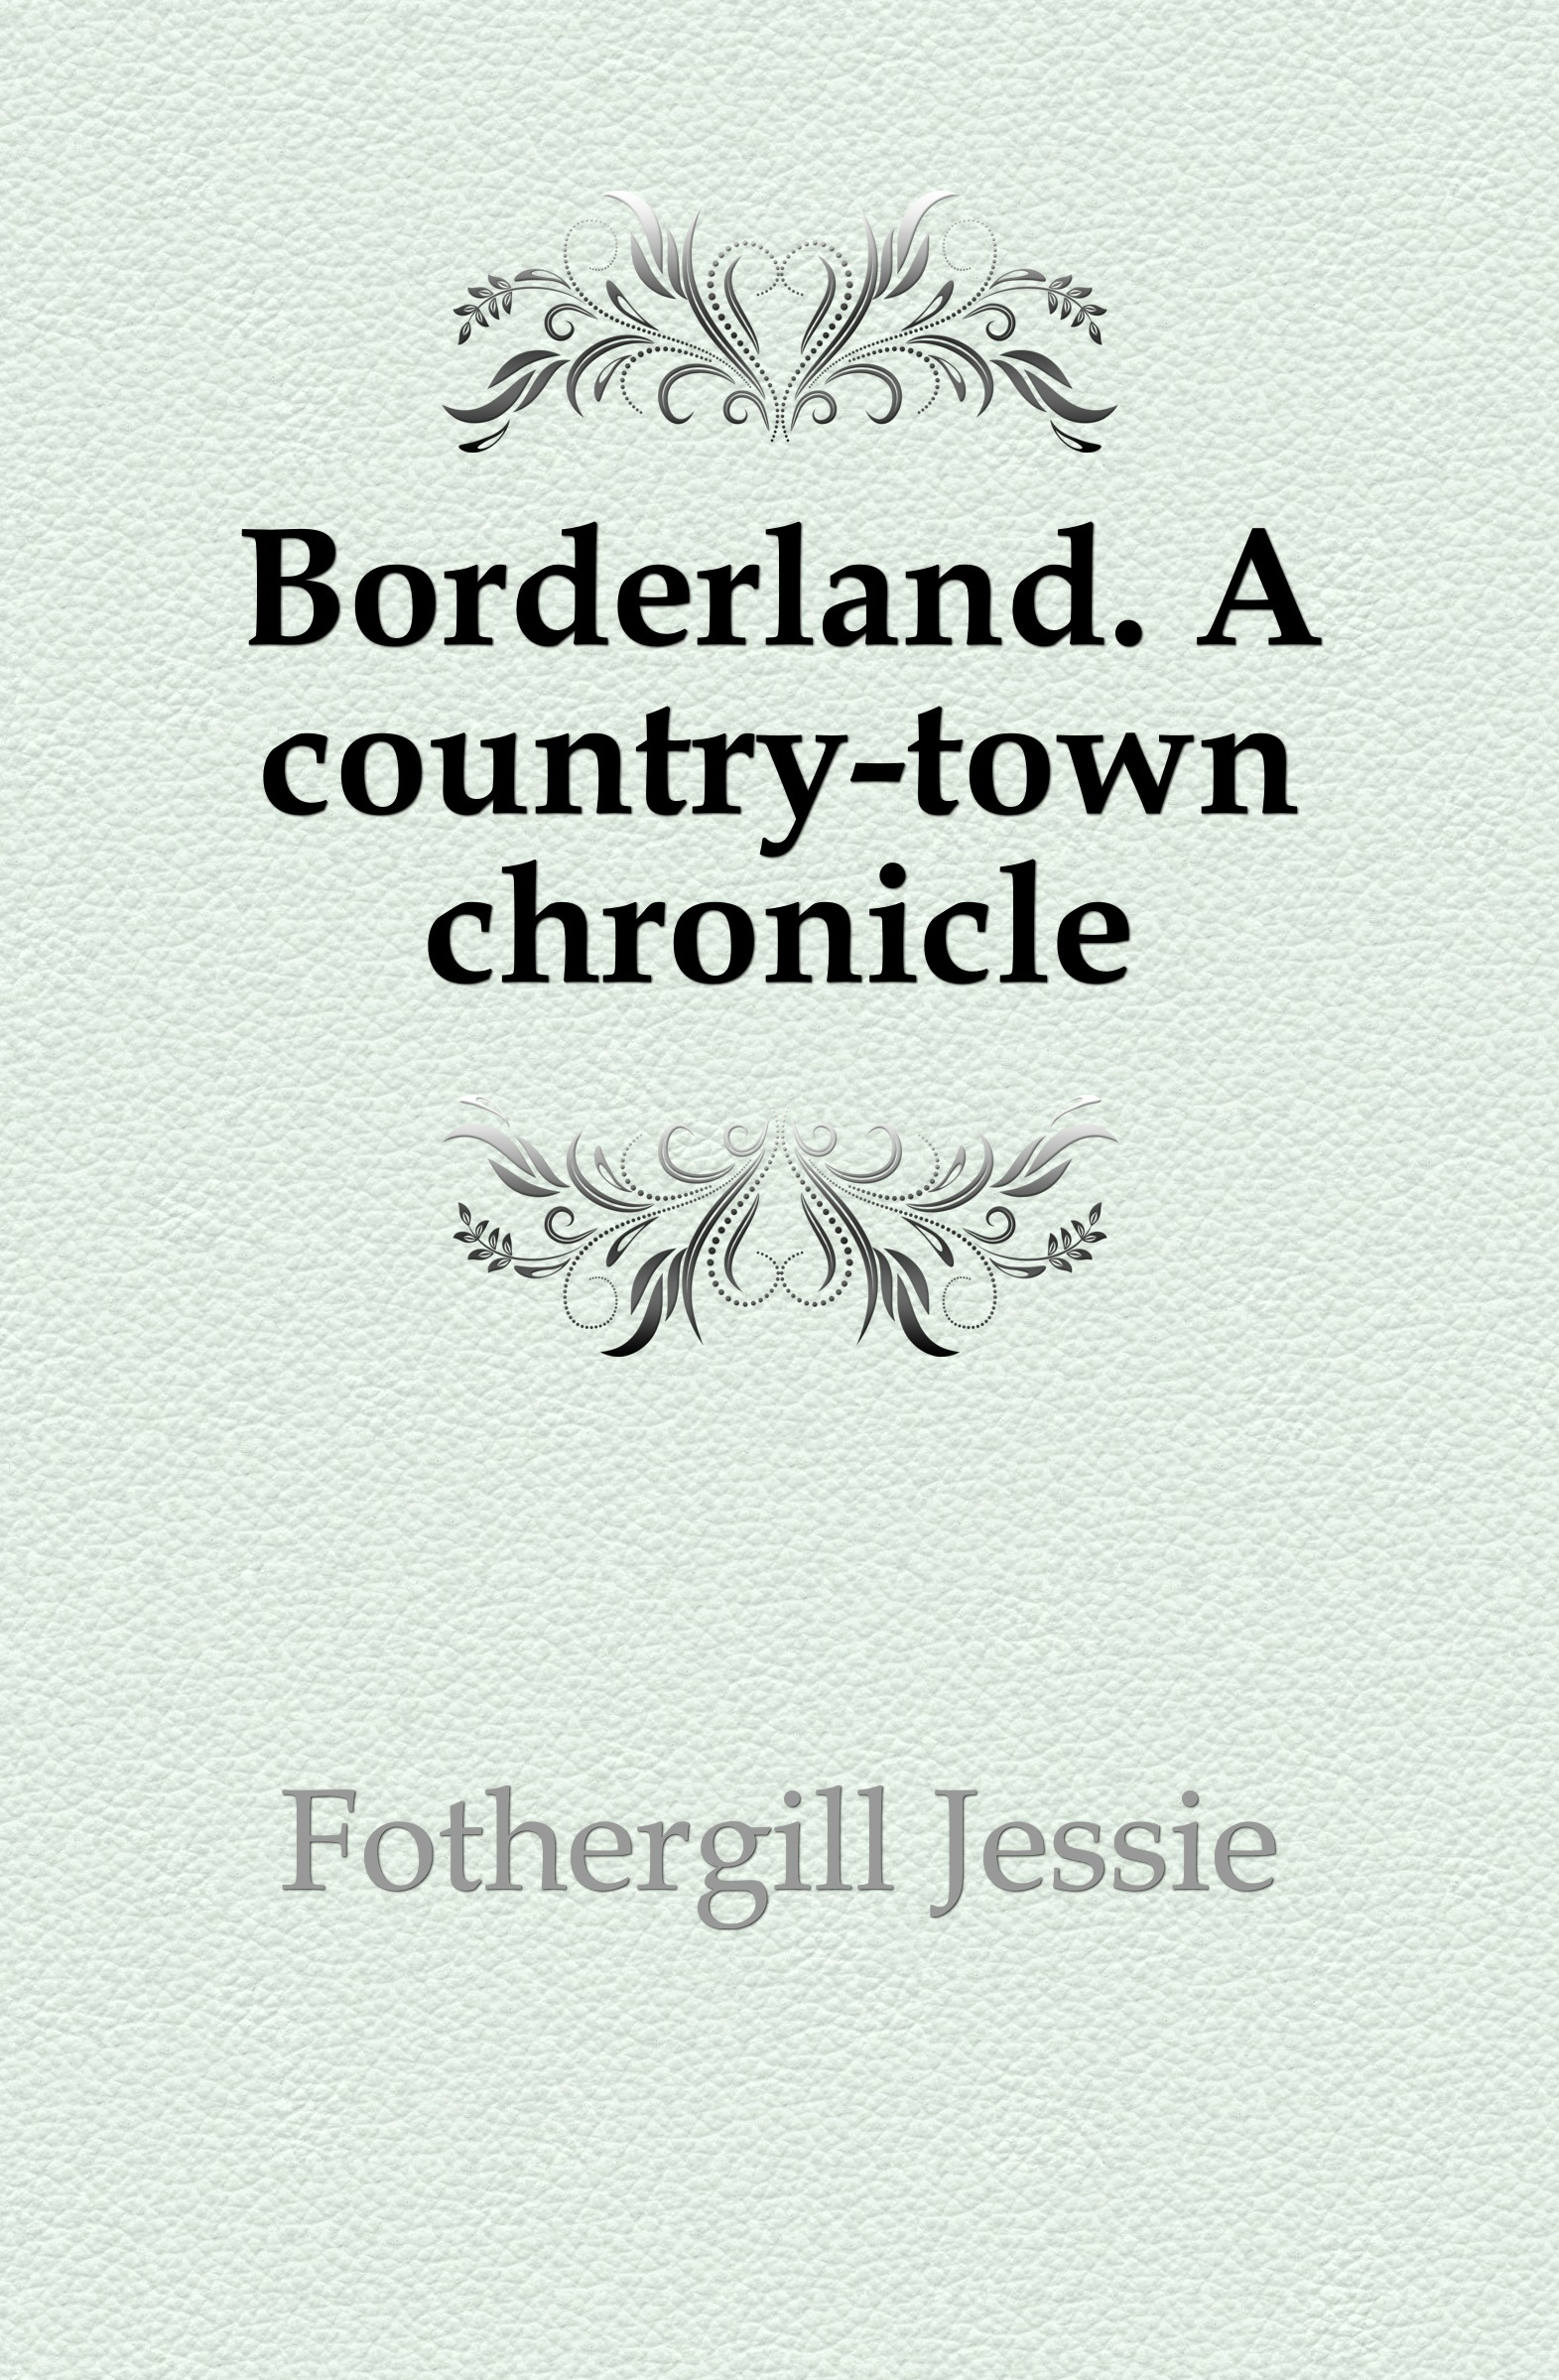 Fothergill Jessie Borderland. A country-town chronicle